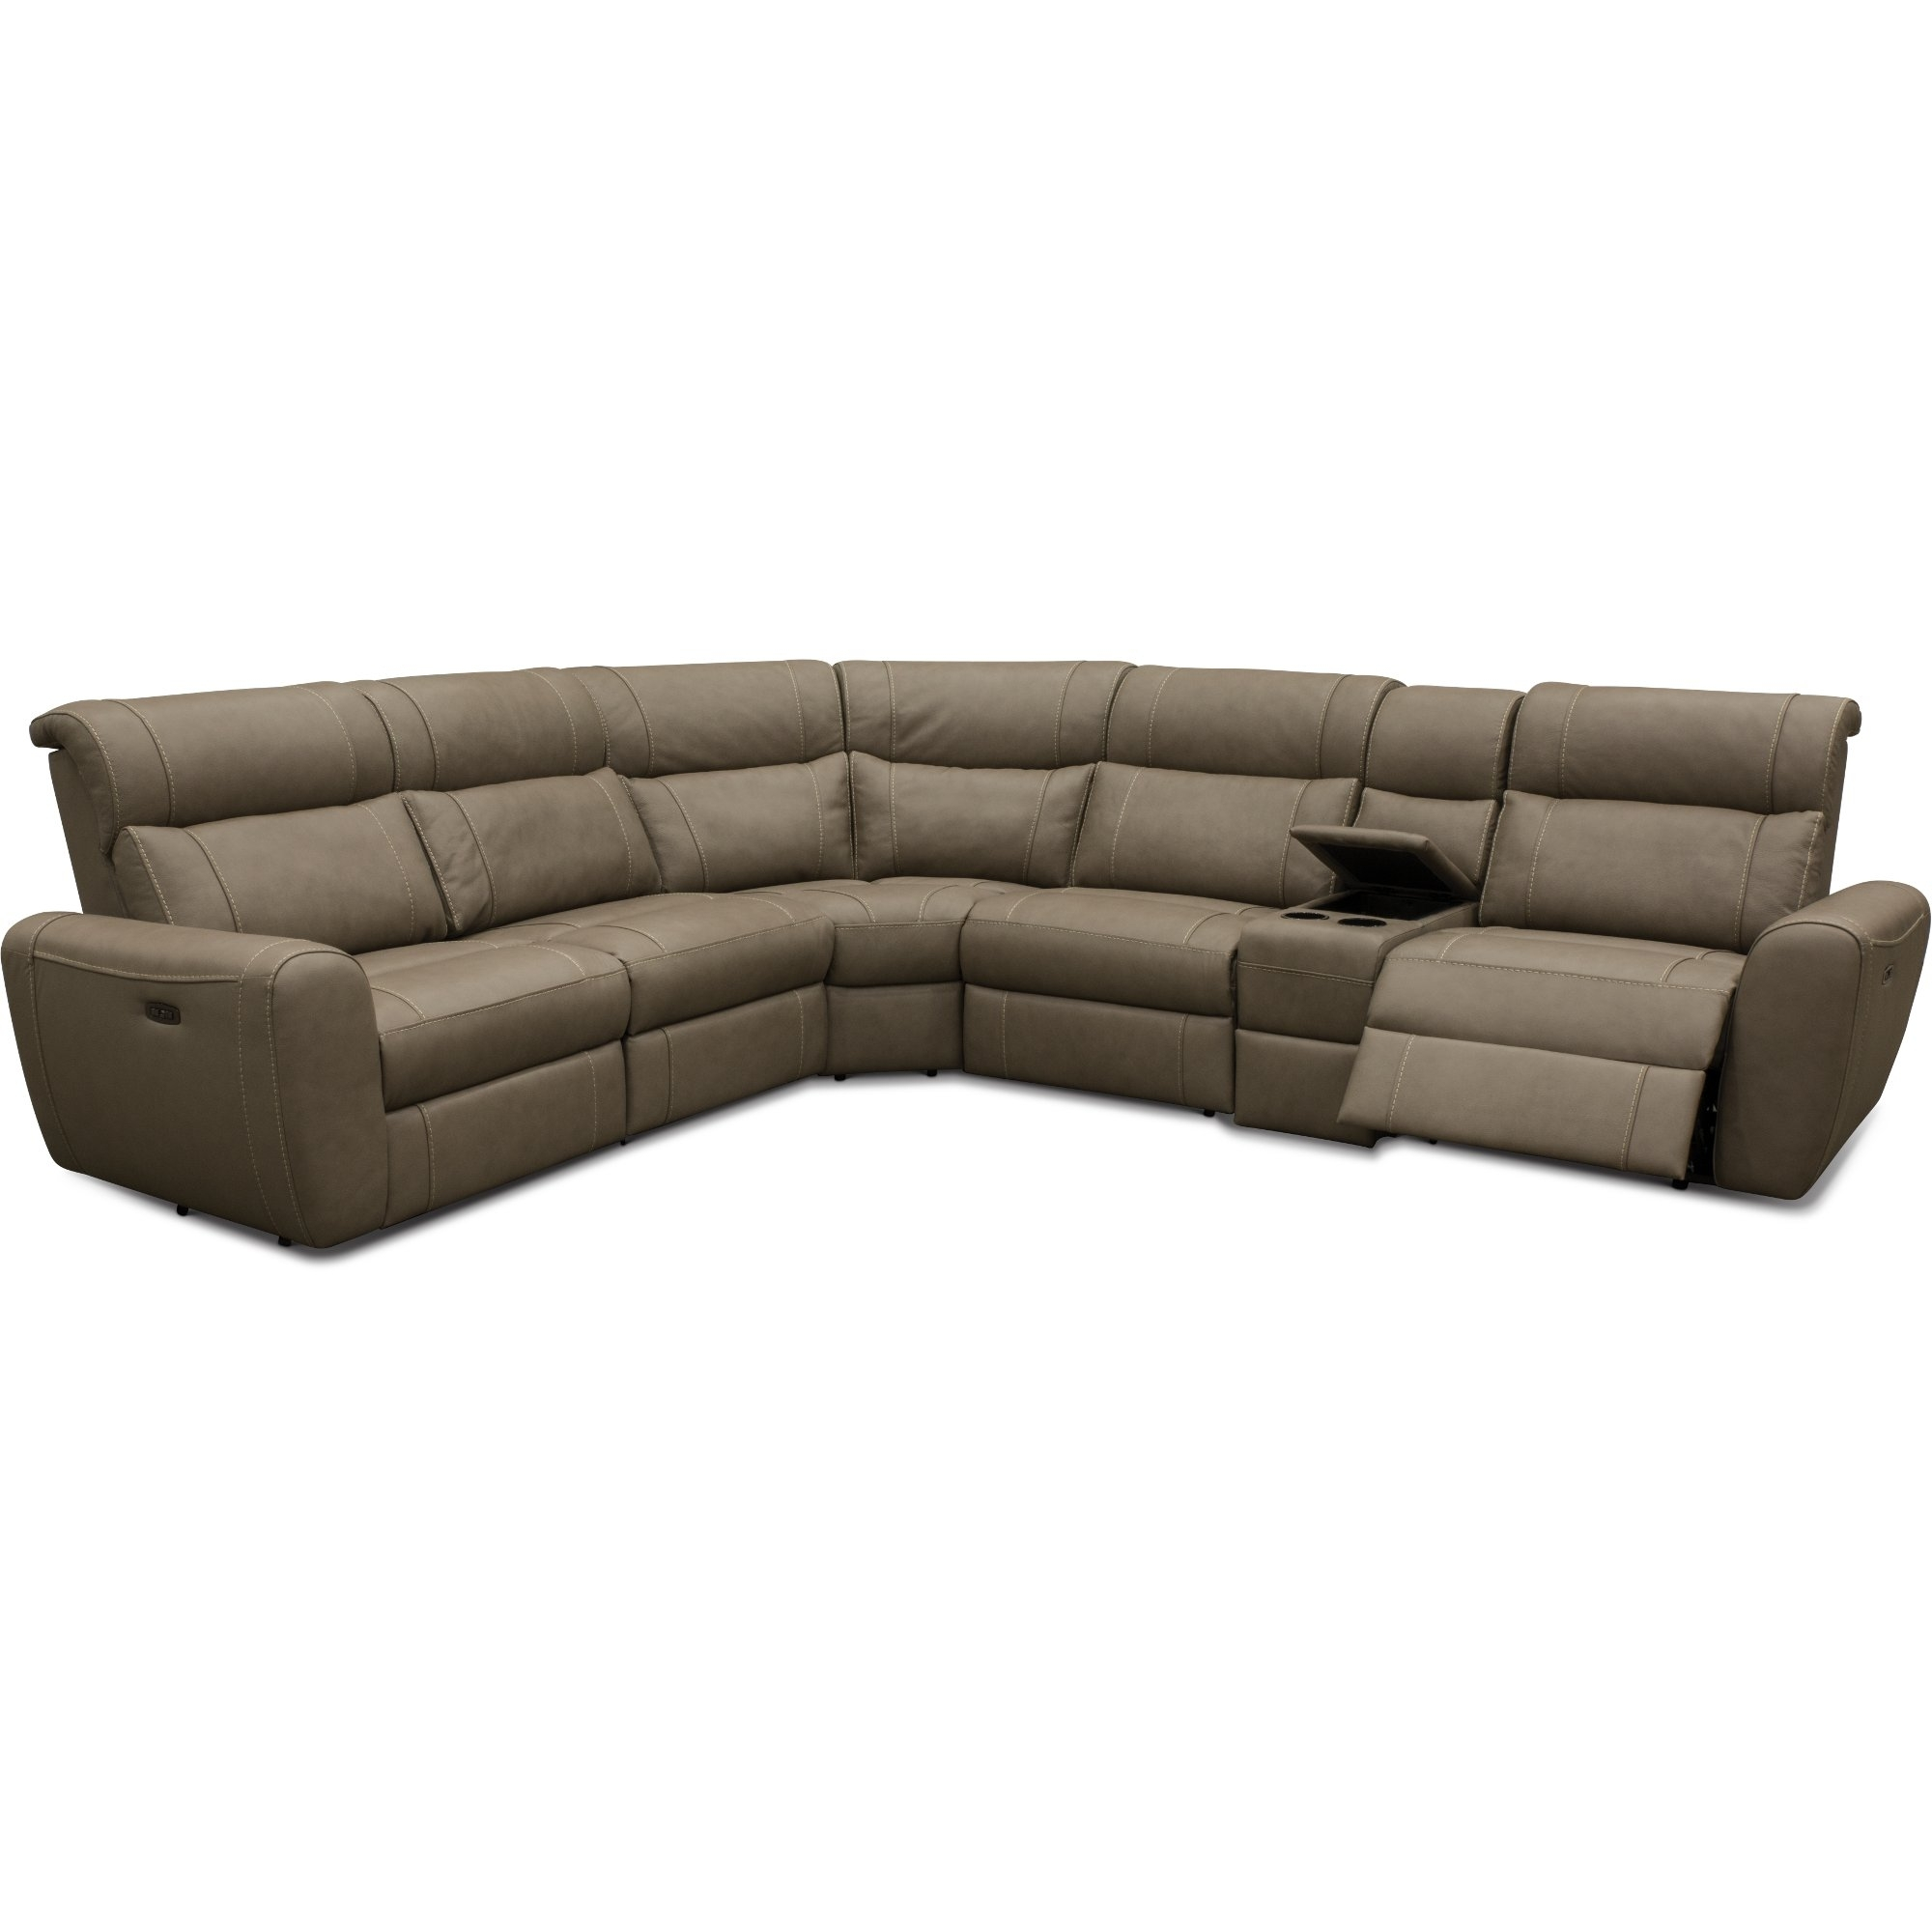 Taupe Leather Match 6 Piece Power Sectional Sofa – Robert | Rc Pertaining To Denali Charcoal Grey 6 Piece Reclining Sectionals With 2 Power Headrests (View 8 of 25)